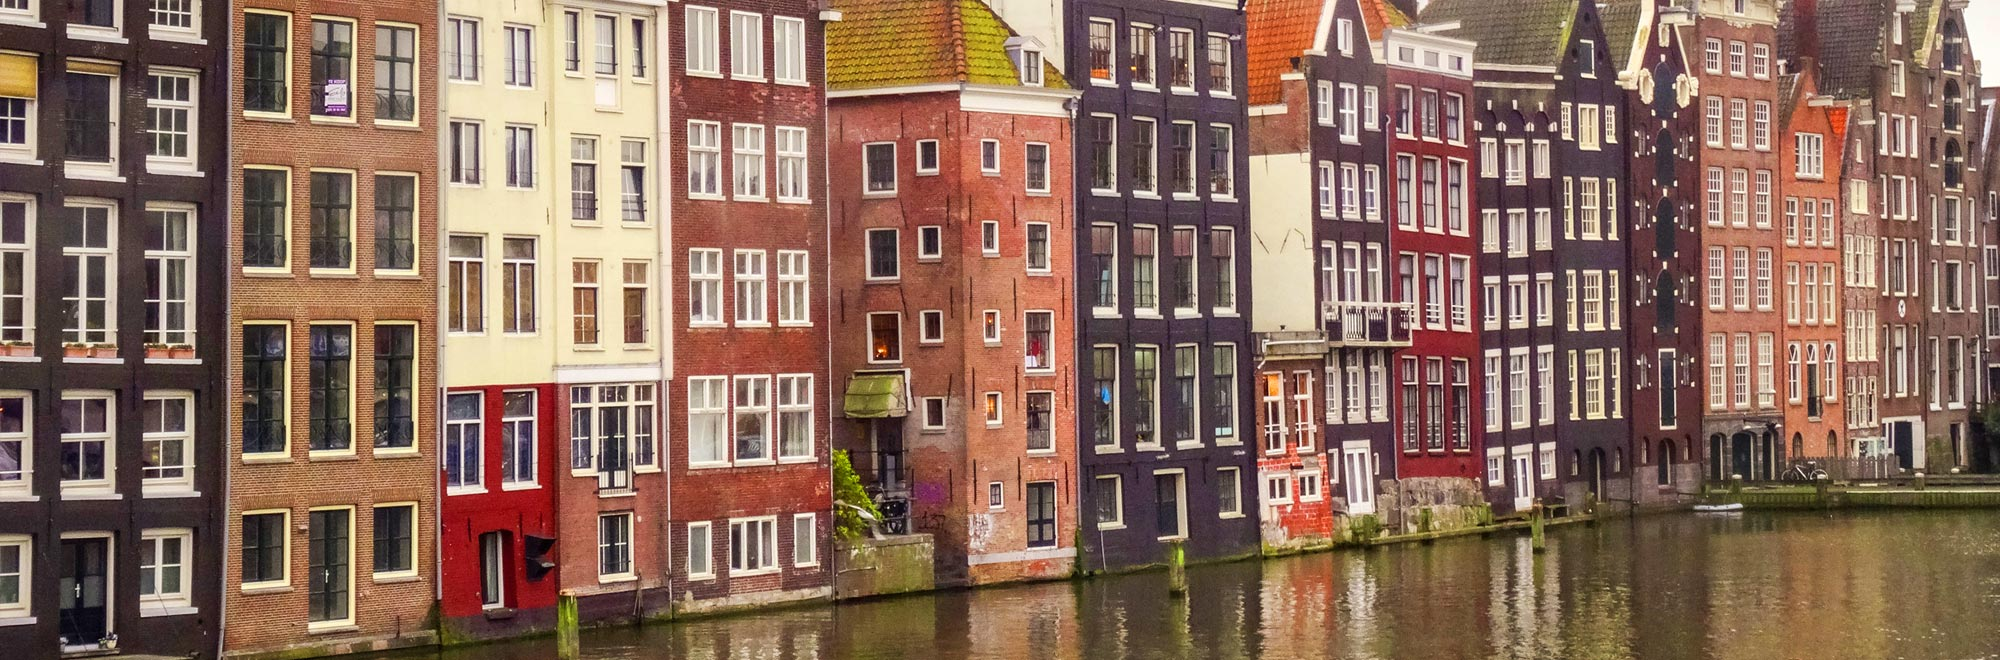 7 Time and Money saving tips for your trip to Amsterdam